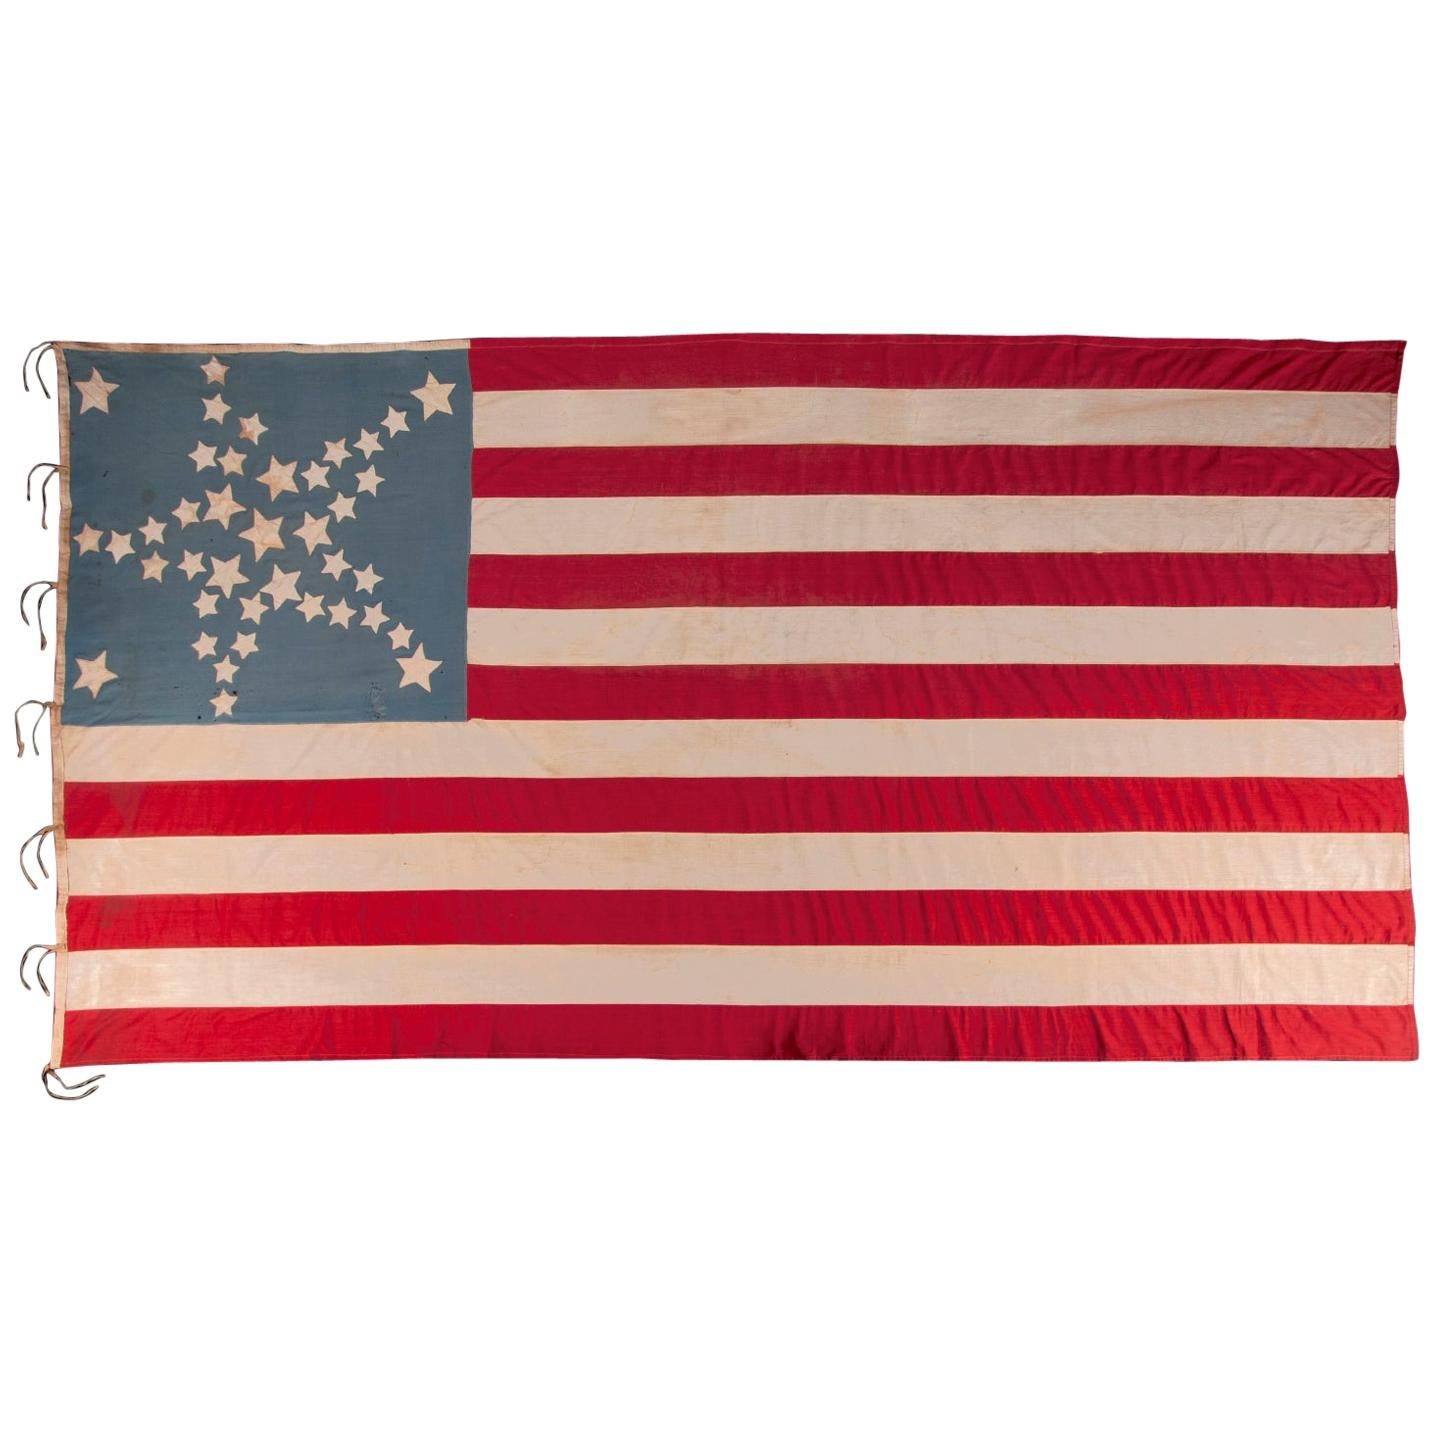 34 Star American flag, Updated to 39 Stars, with Stars in a Great Star Pattern